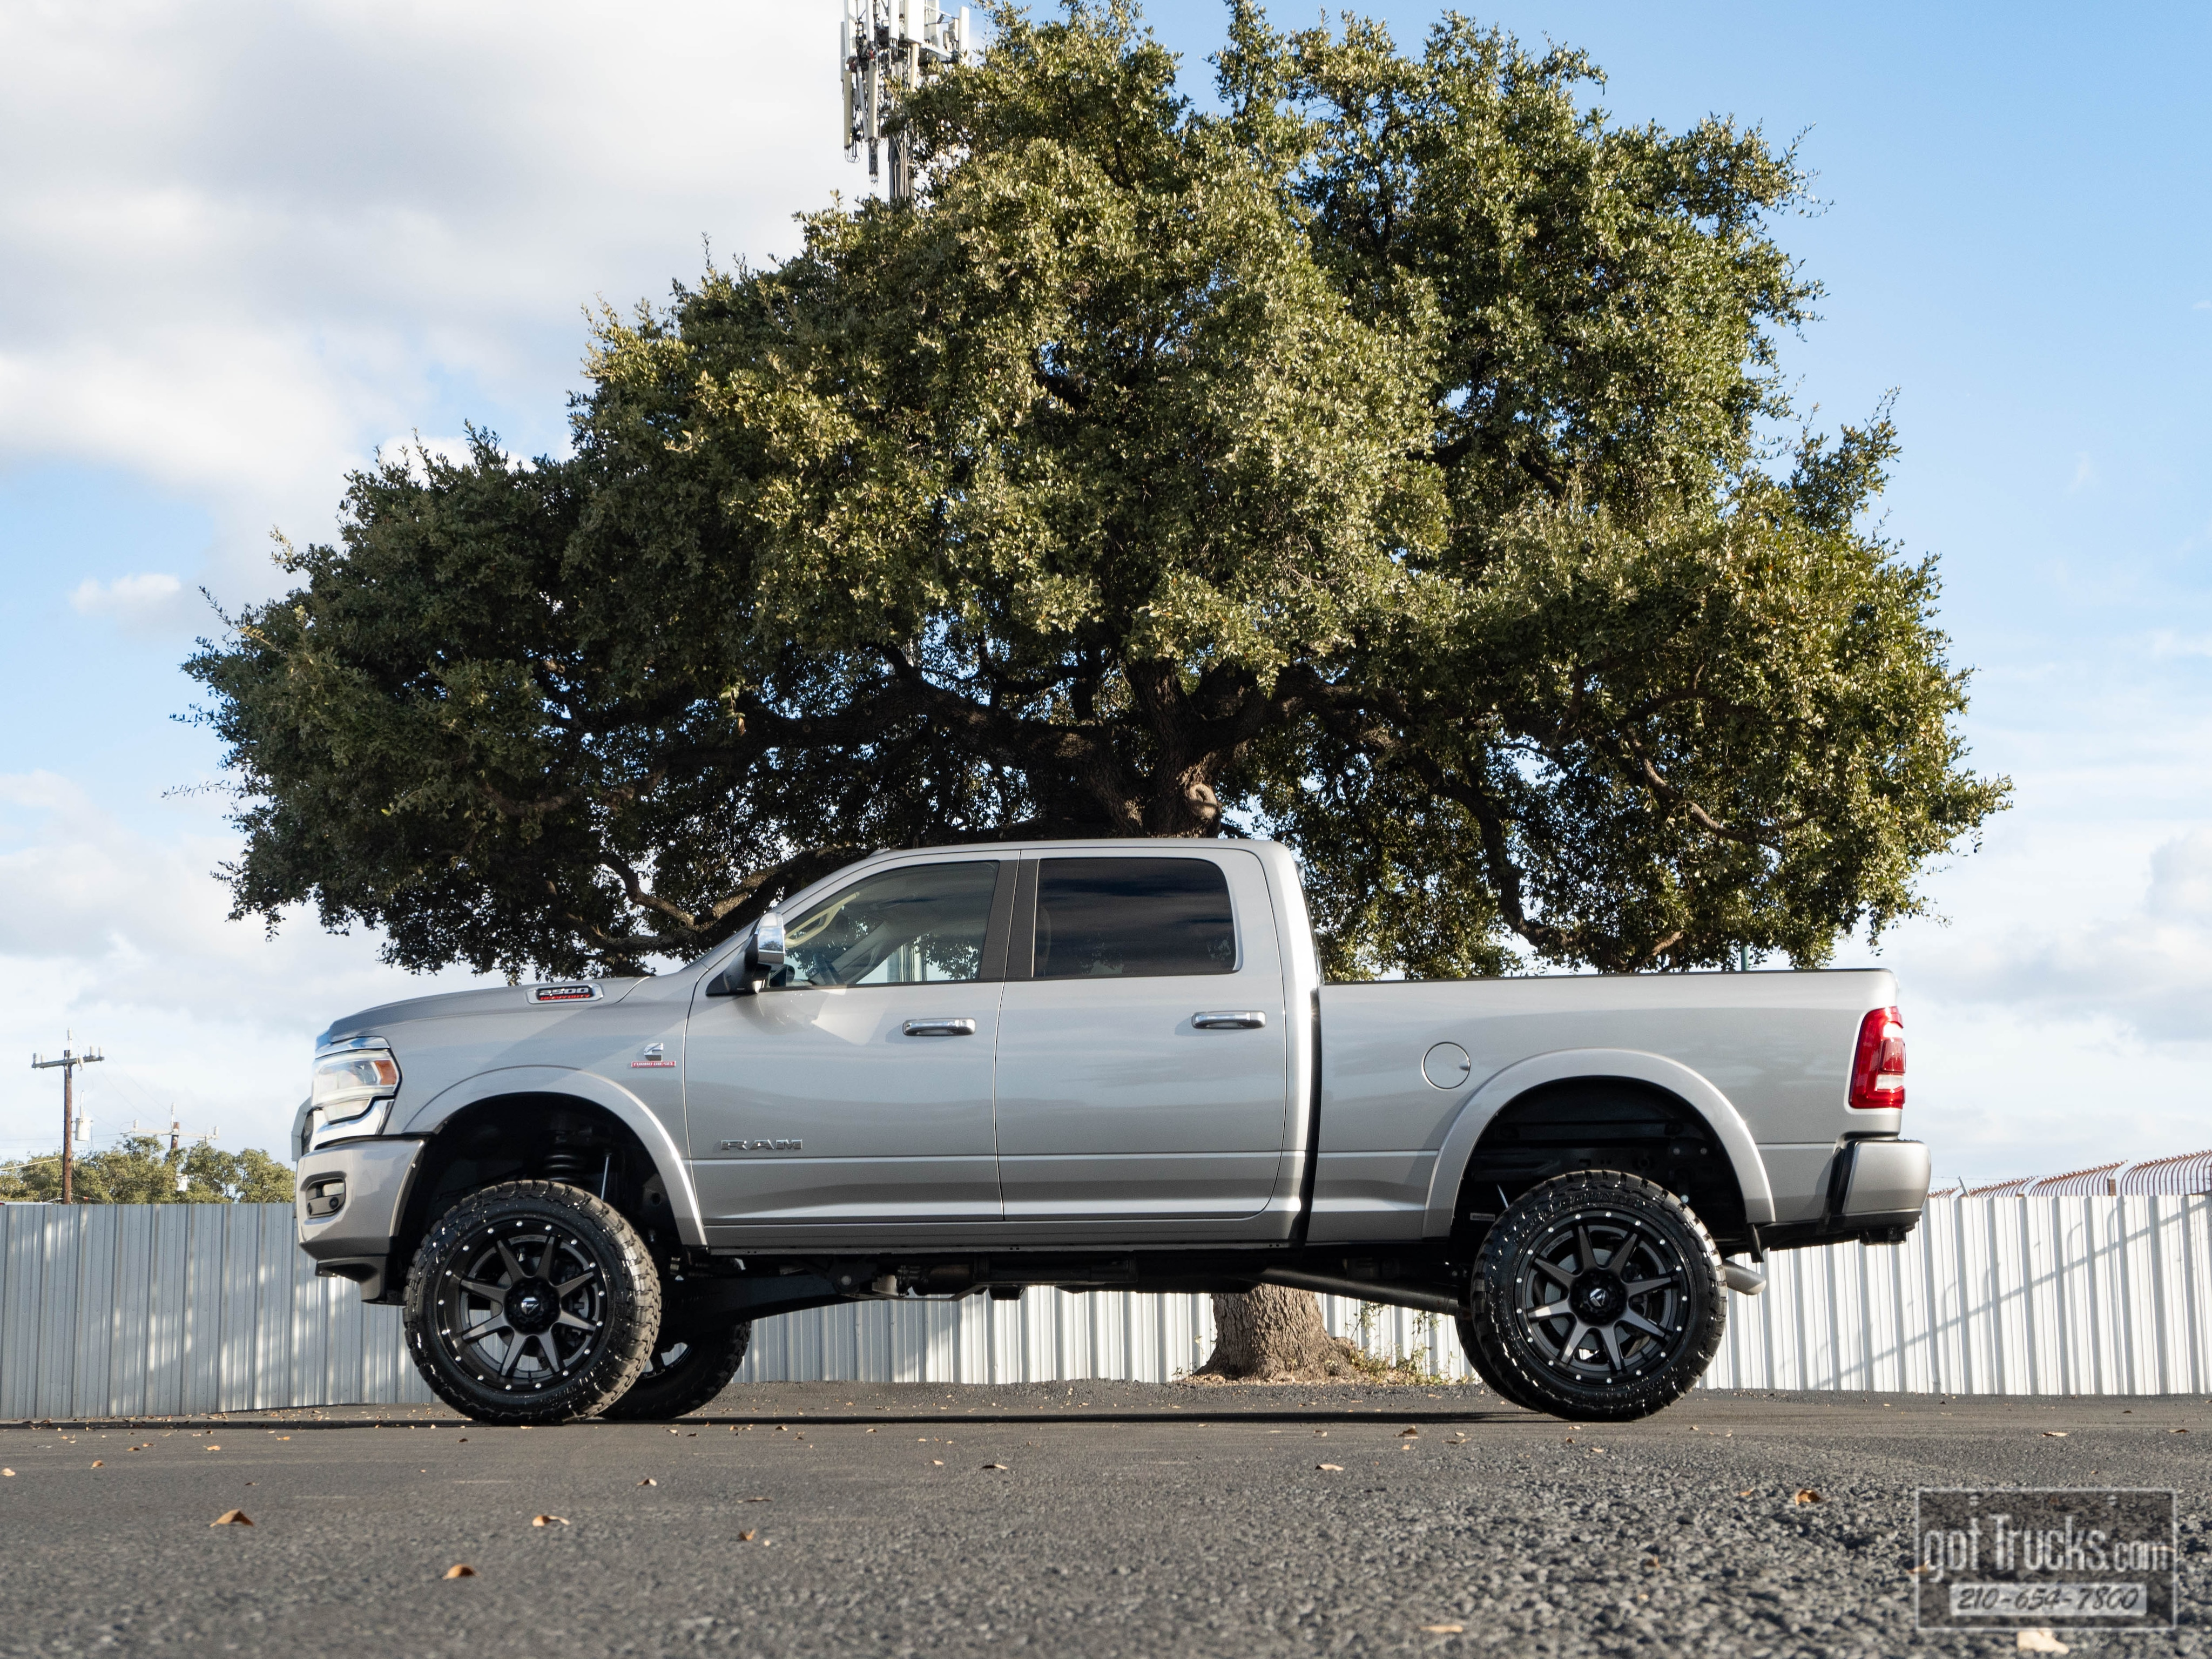 Used 2020 Dodge Ram 2500 For Sale At American Auto Brokers Vin 3c6ur5fl3lg157924